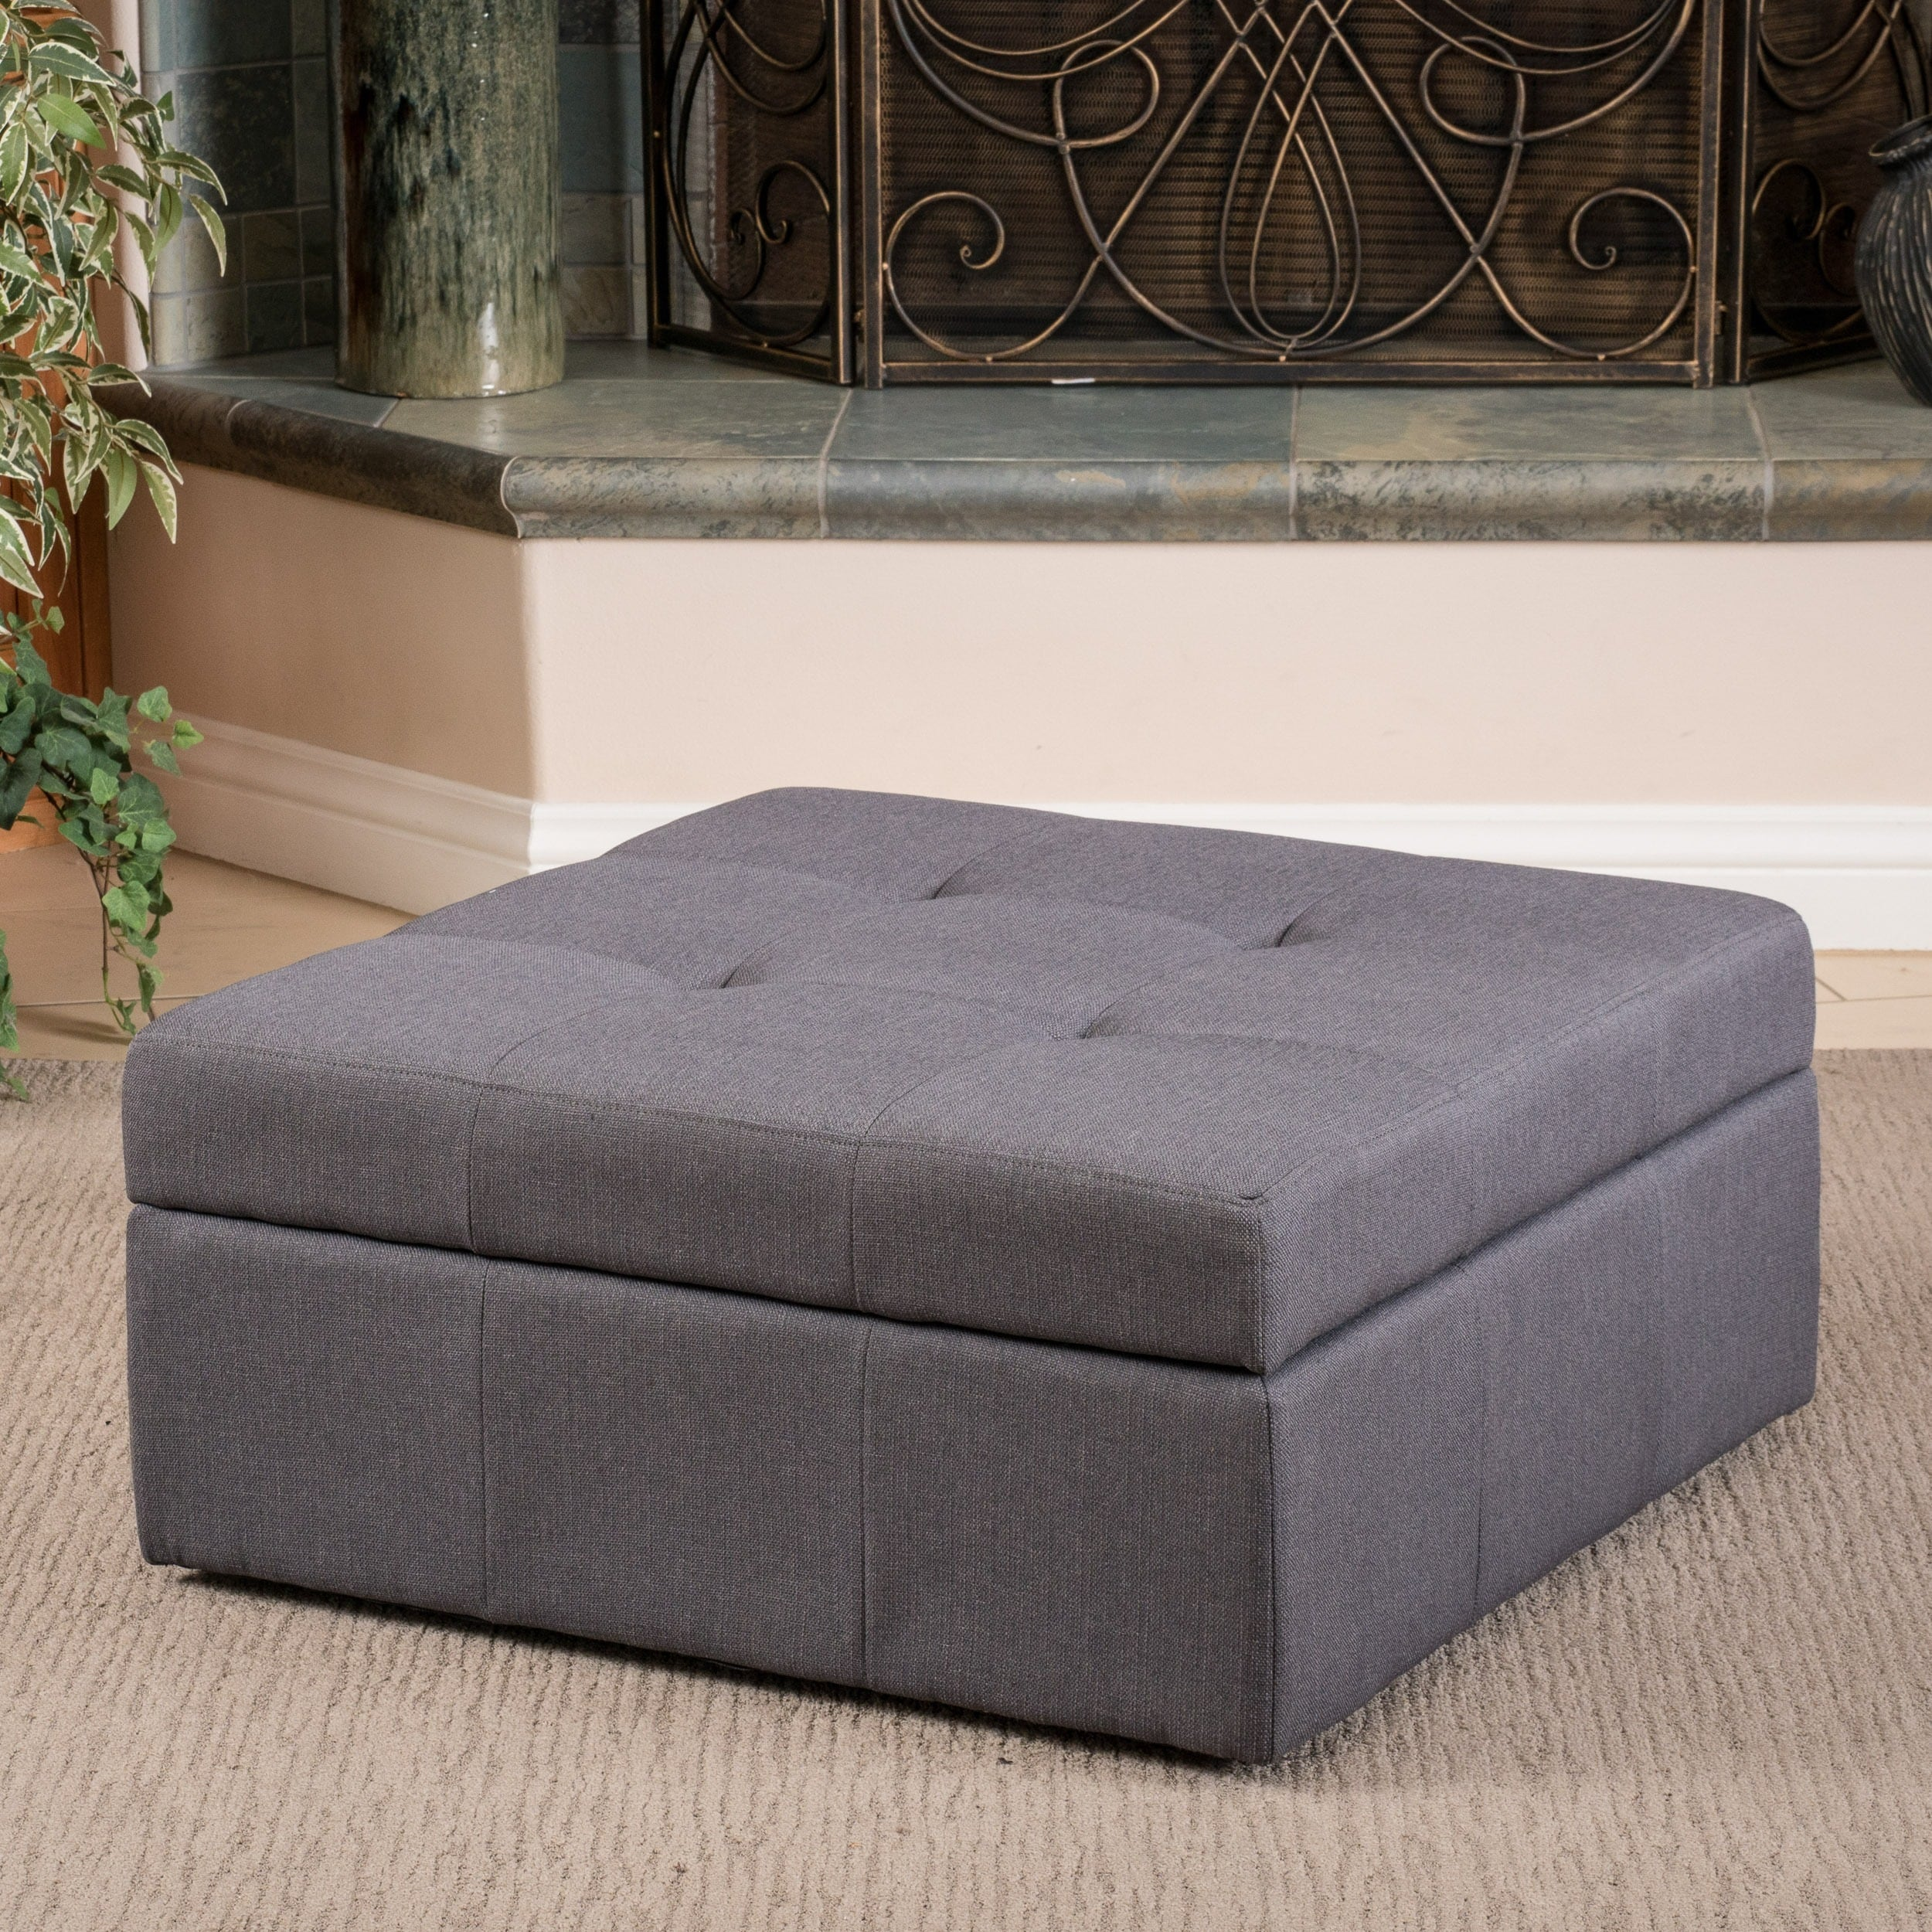 chatsworth contemporary tufted fabric storage ottoman with rolling casters by christopher knight home